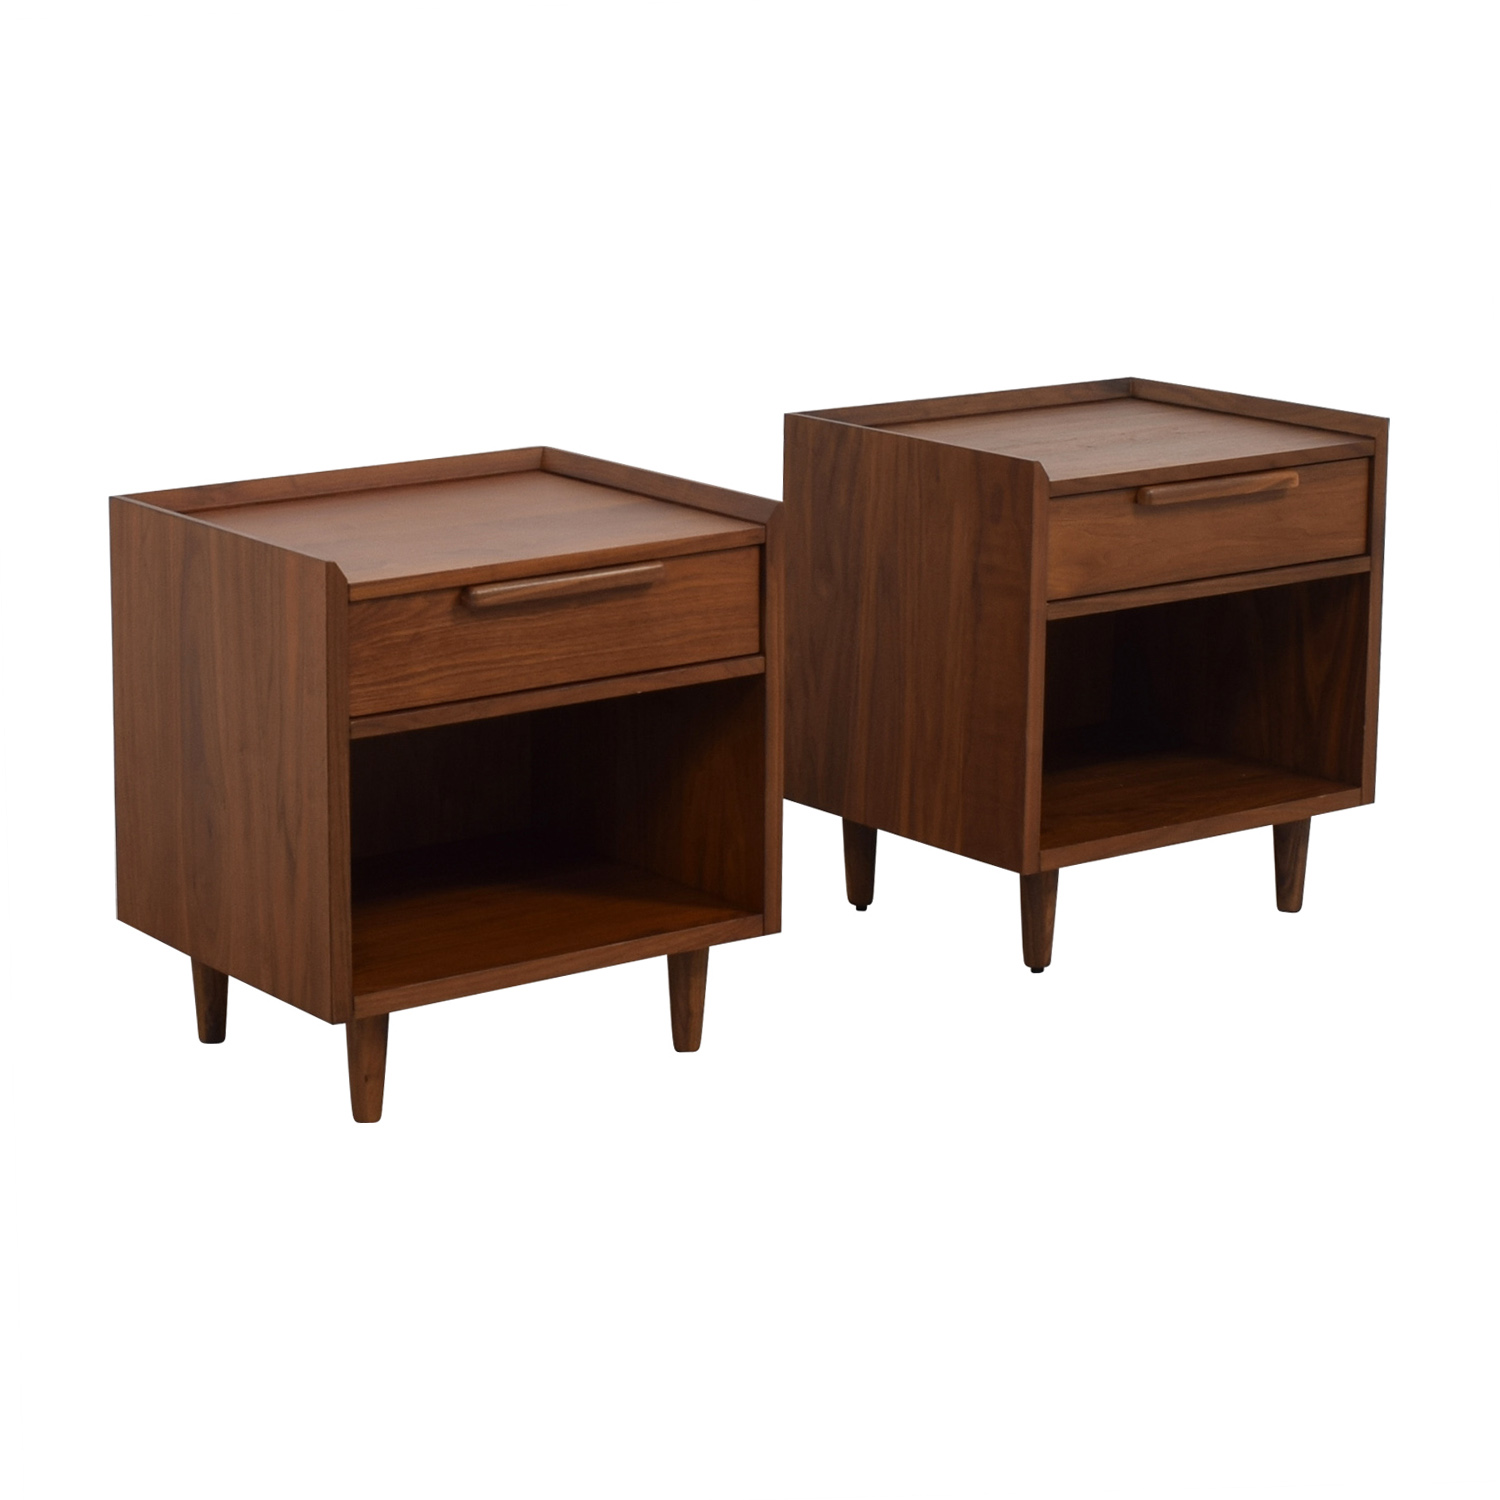 Crate & Barrel Crate & Barrel Single Drawer Nightstands End Tables